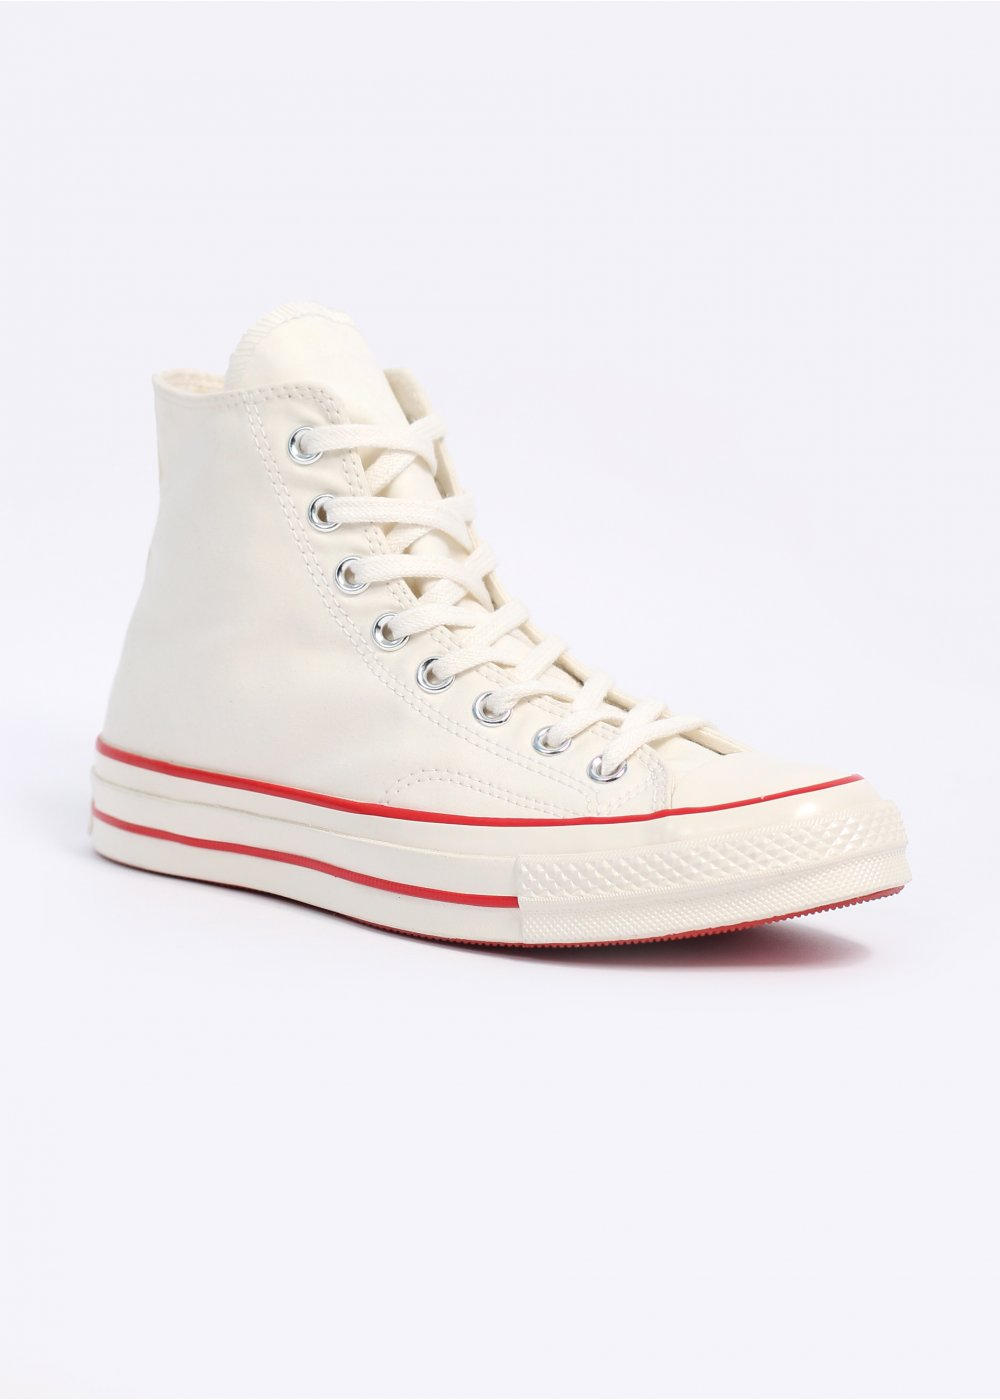 e729143e5c6f Converse First String x Nigel Cabourn 1970 s All Start Chuck Taylor Hi -  White   Red Clay